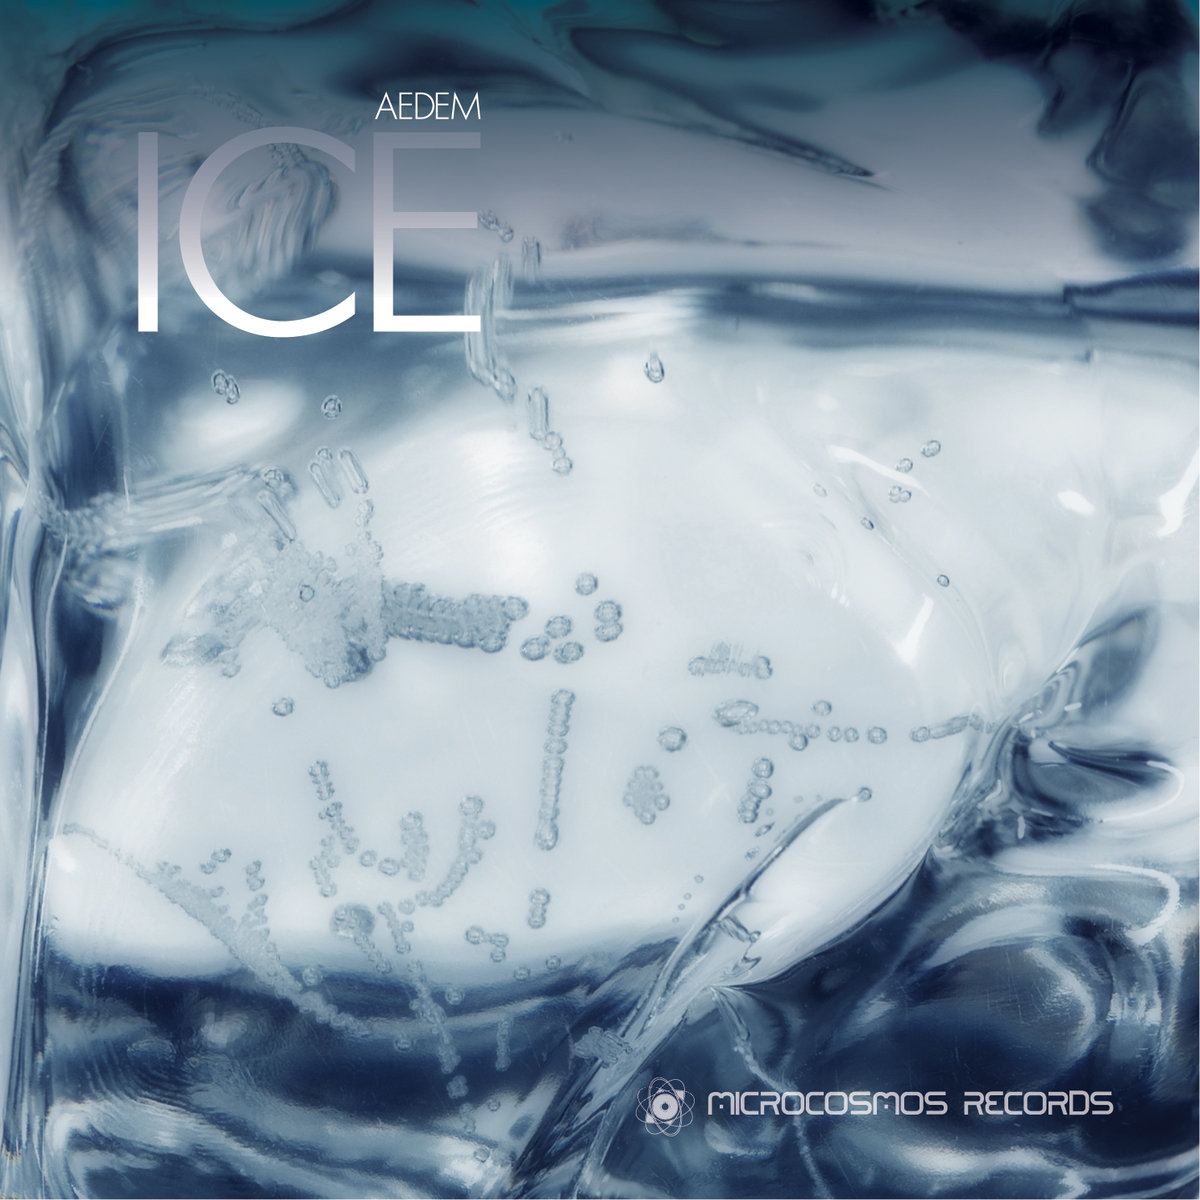 Aedem - Ice @ 'Ice' album (ambient, chill-out)